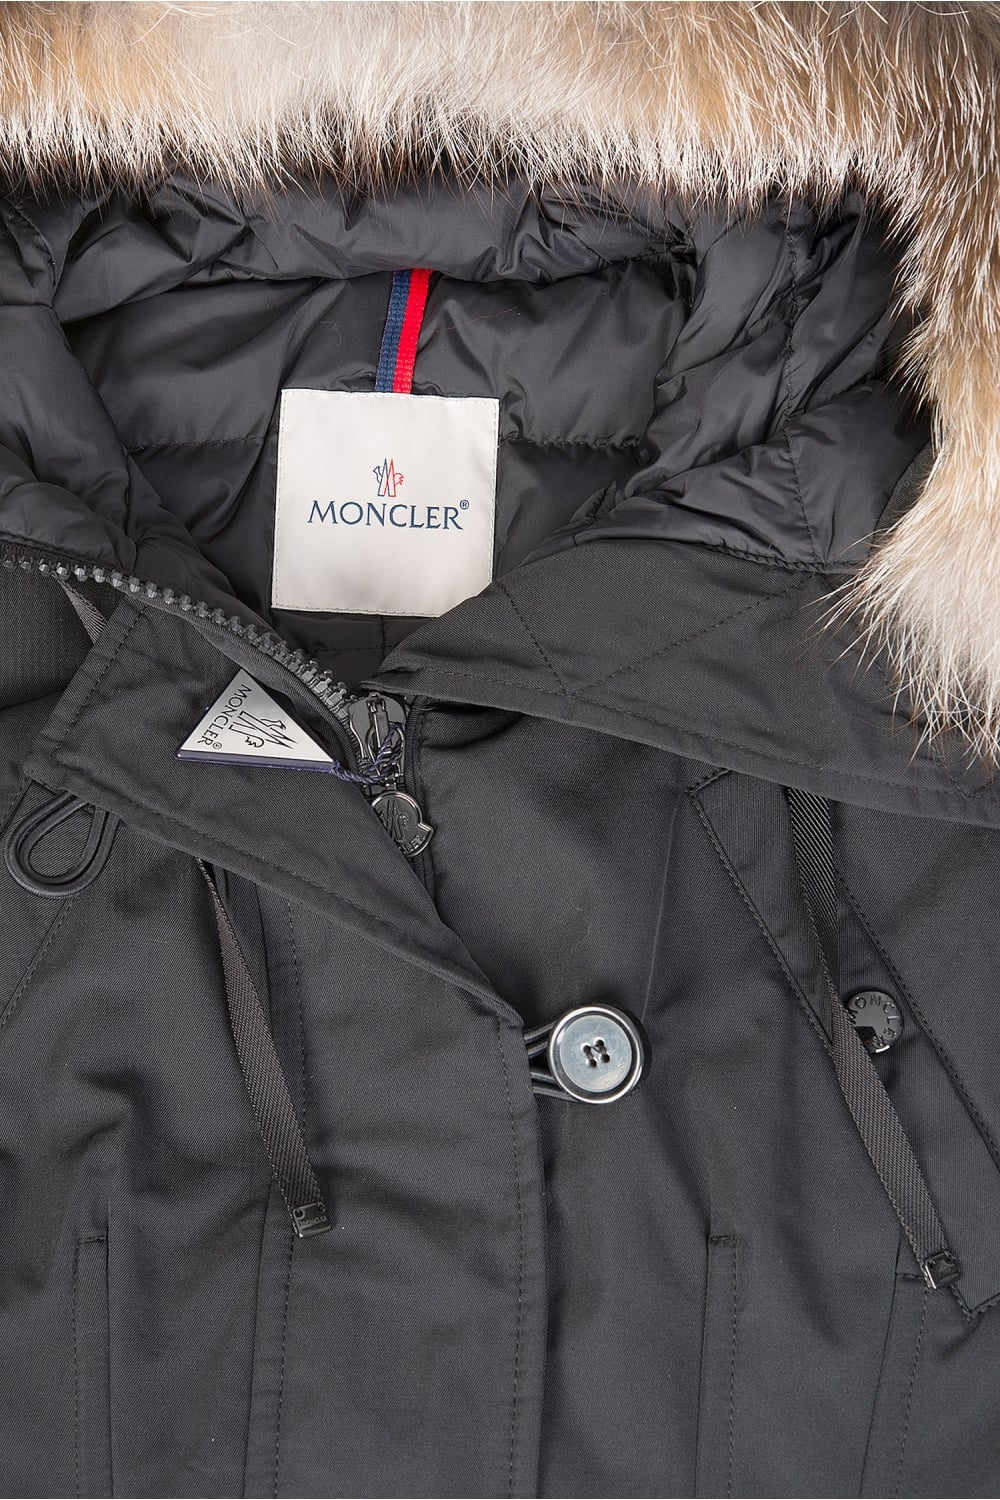 moncler aredhel review